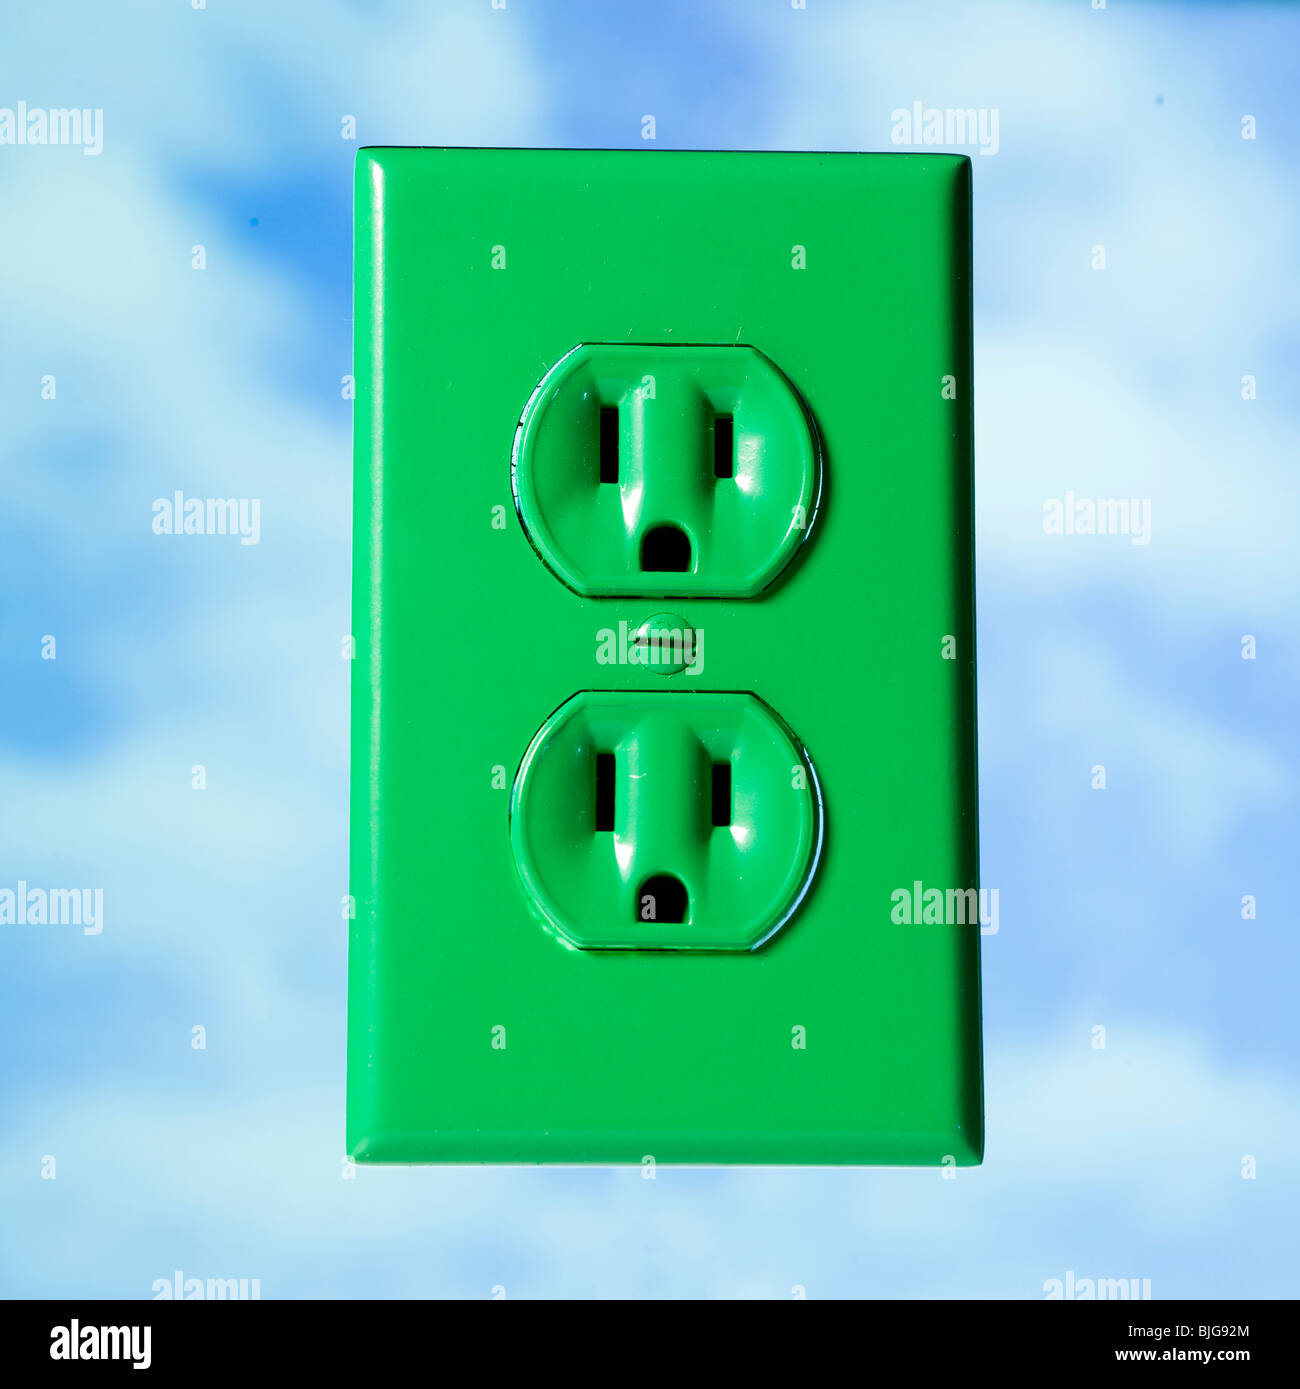 green power outlet - Stock Image